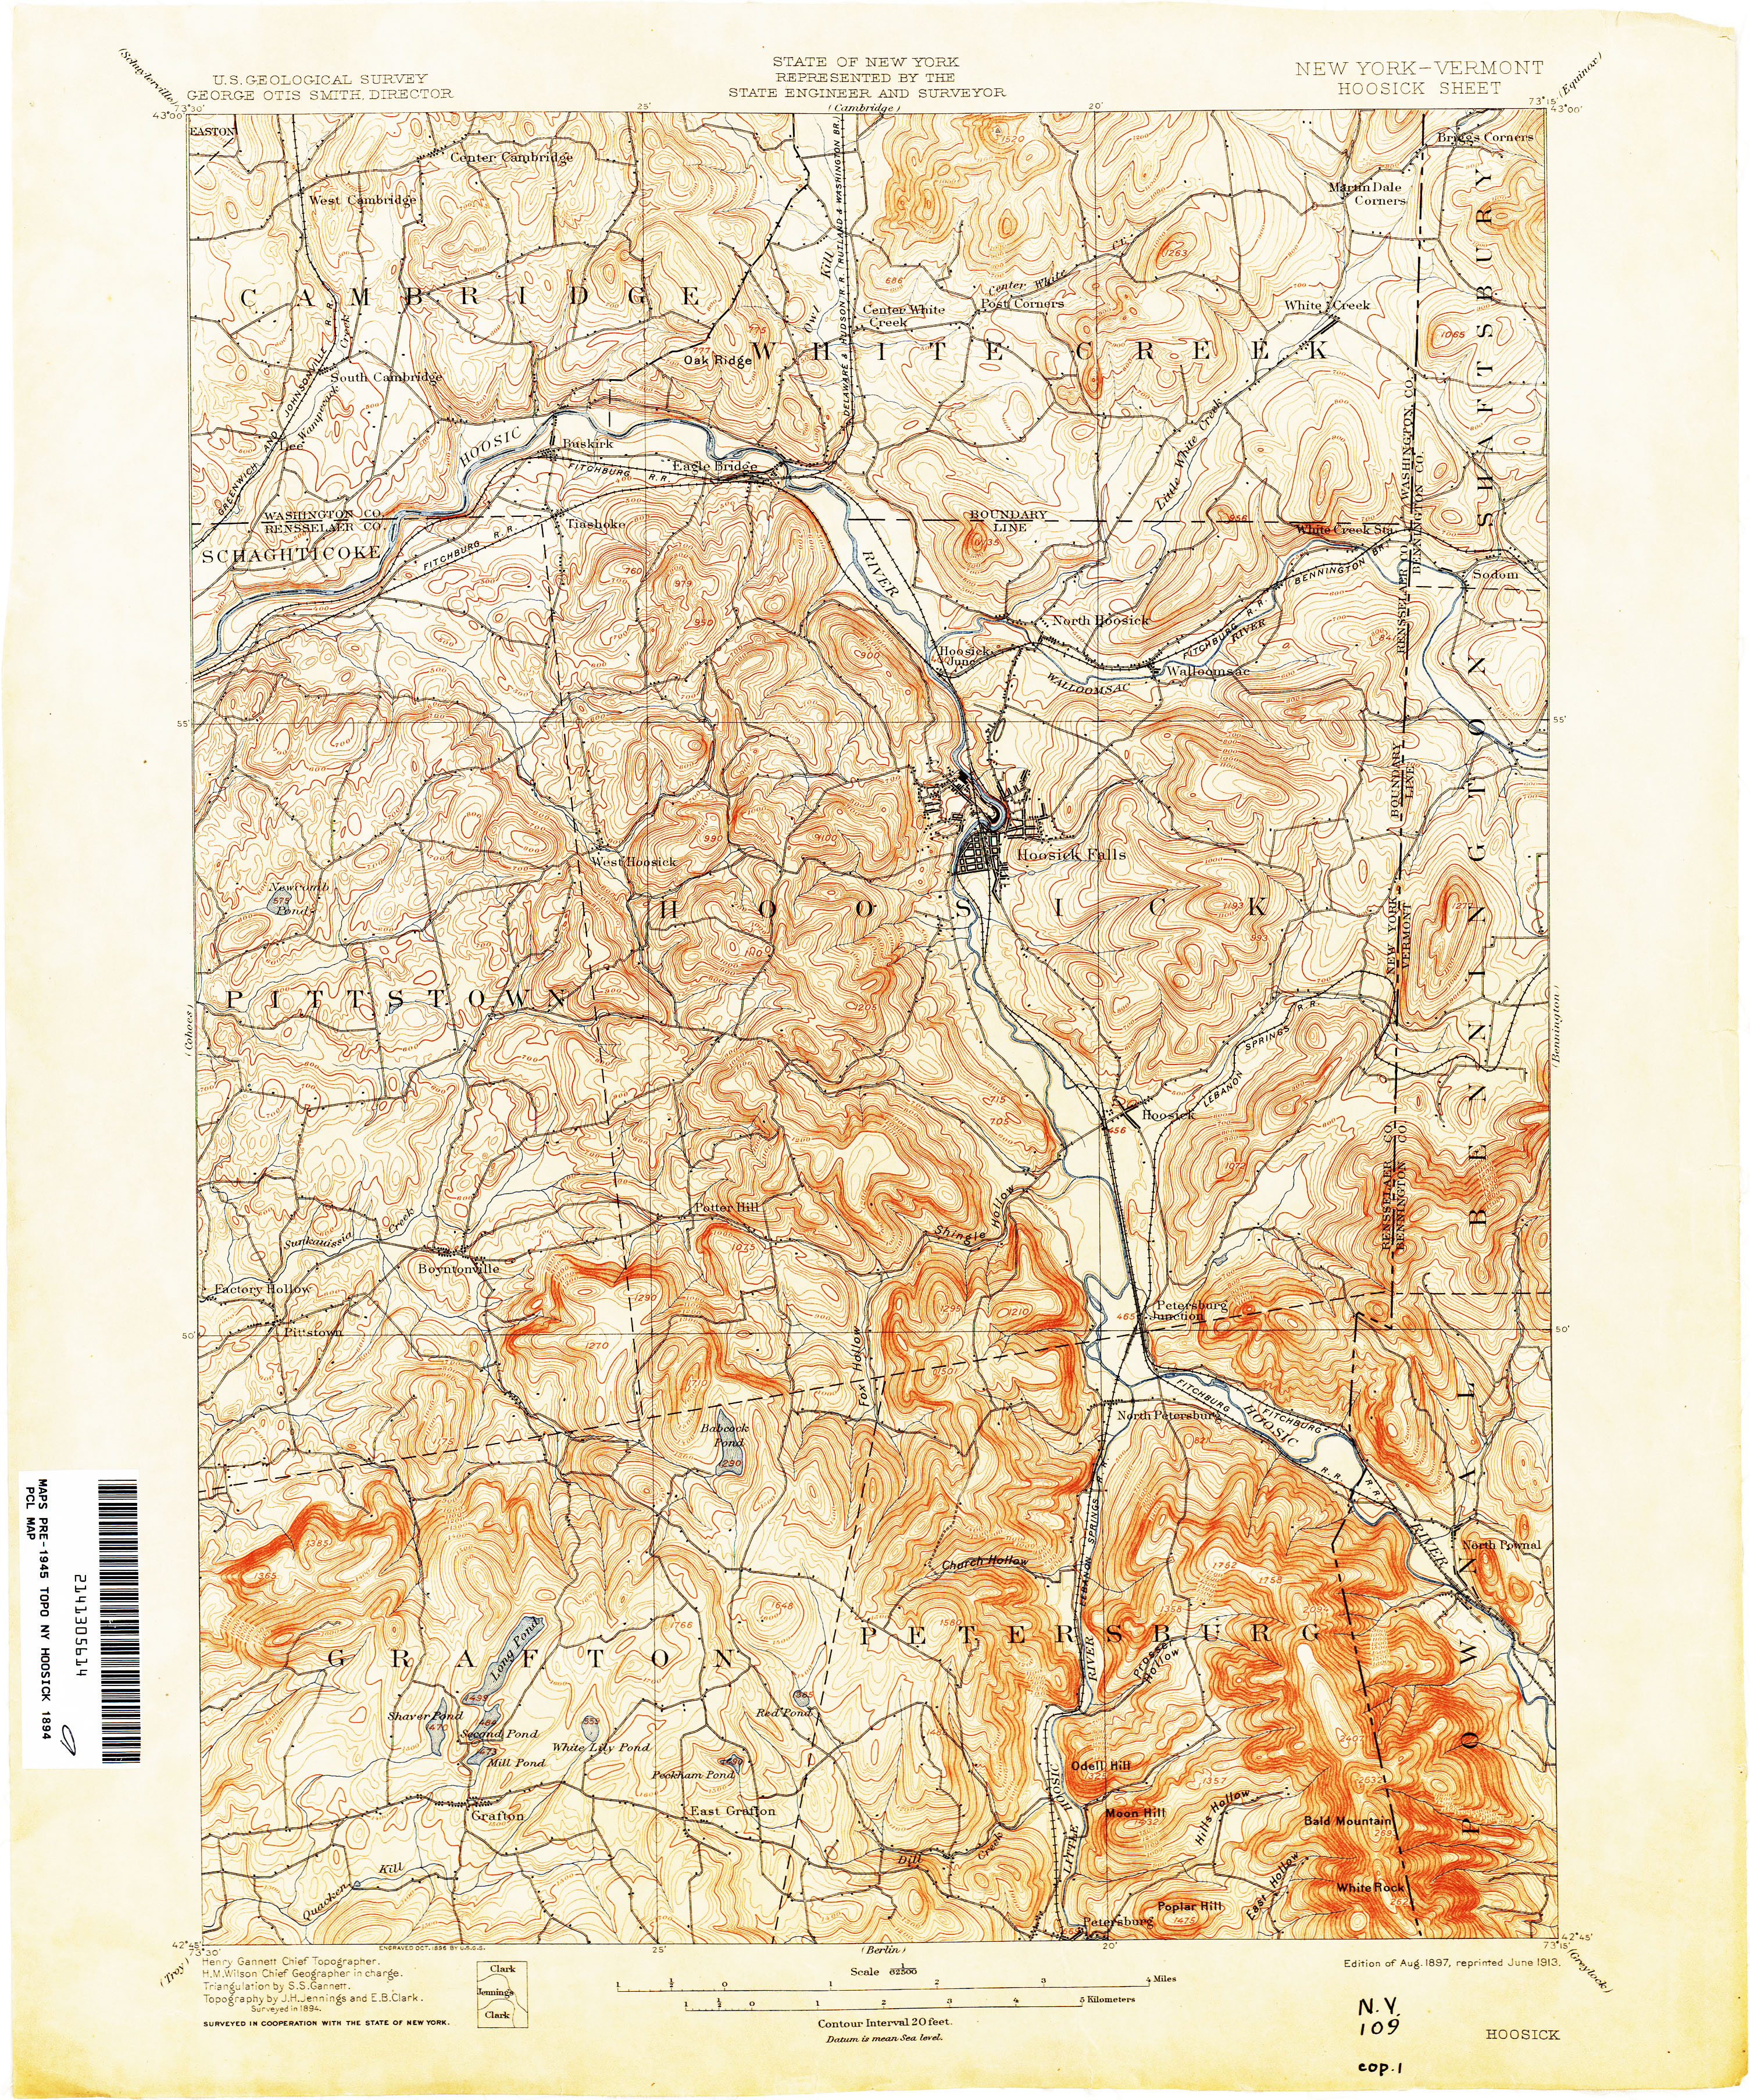 Vermont Historical Topographic Maps PerryCastañeda Map - New york vermont map